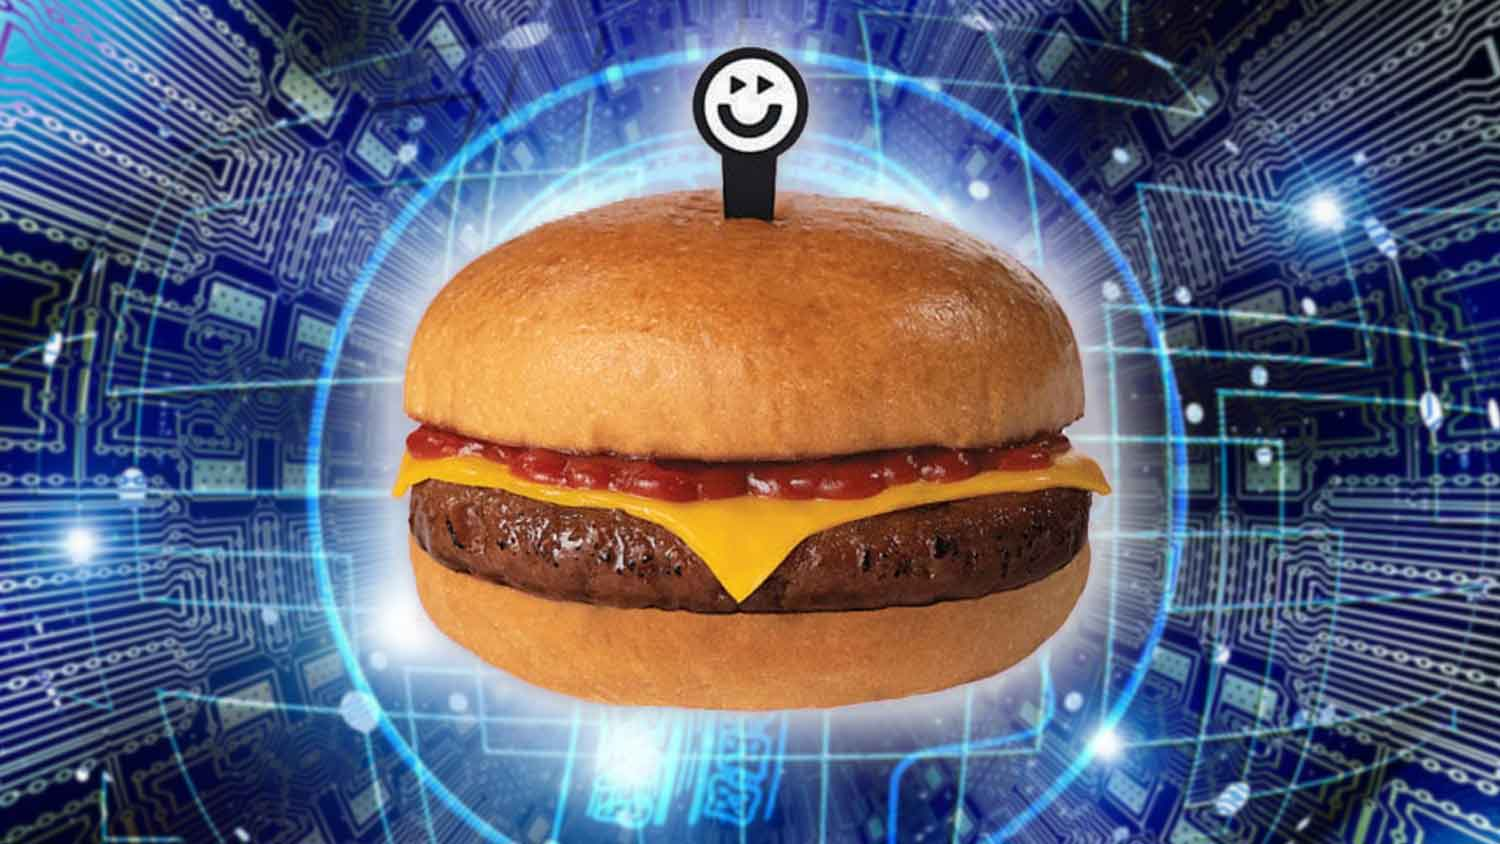 Brazilians Are Making Vegan Burgers With Artificial Intelligence